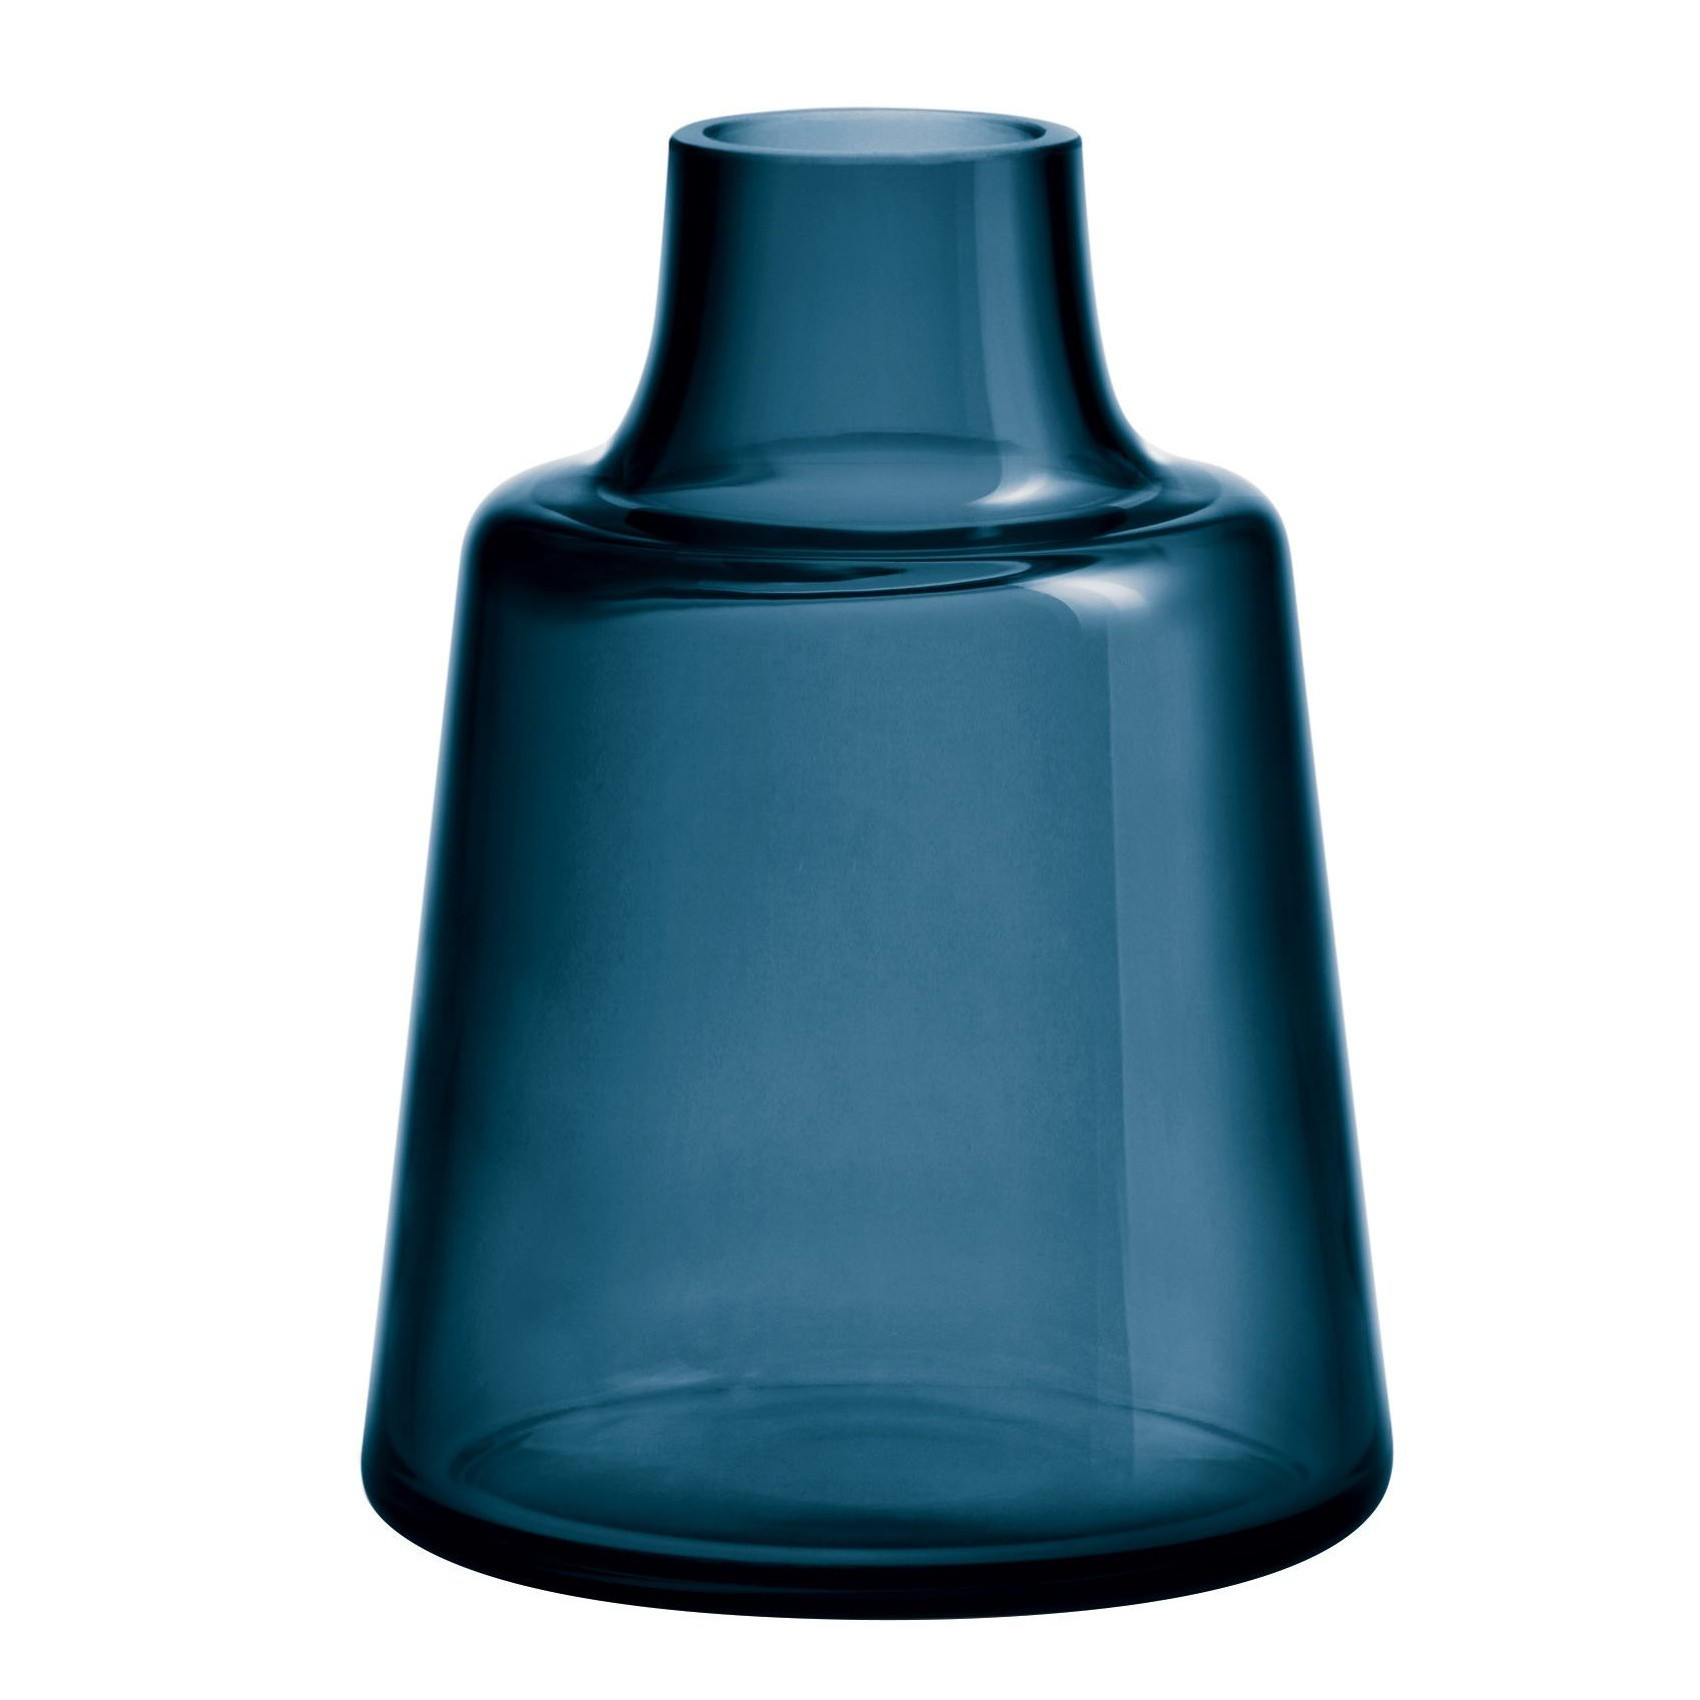 15 attractive Blue Glass Vases Cheap